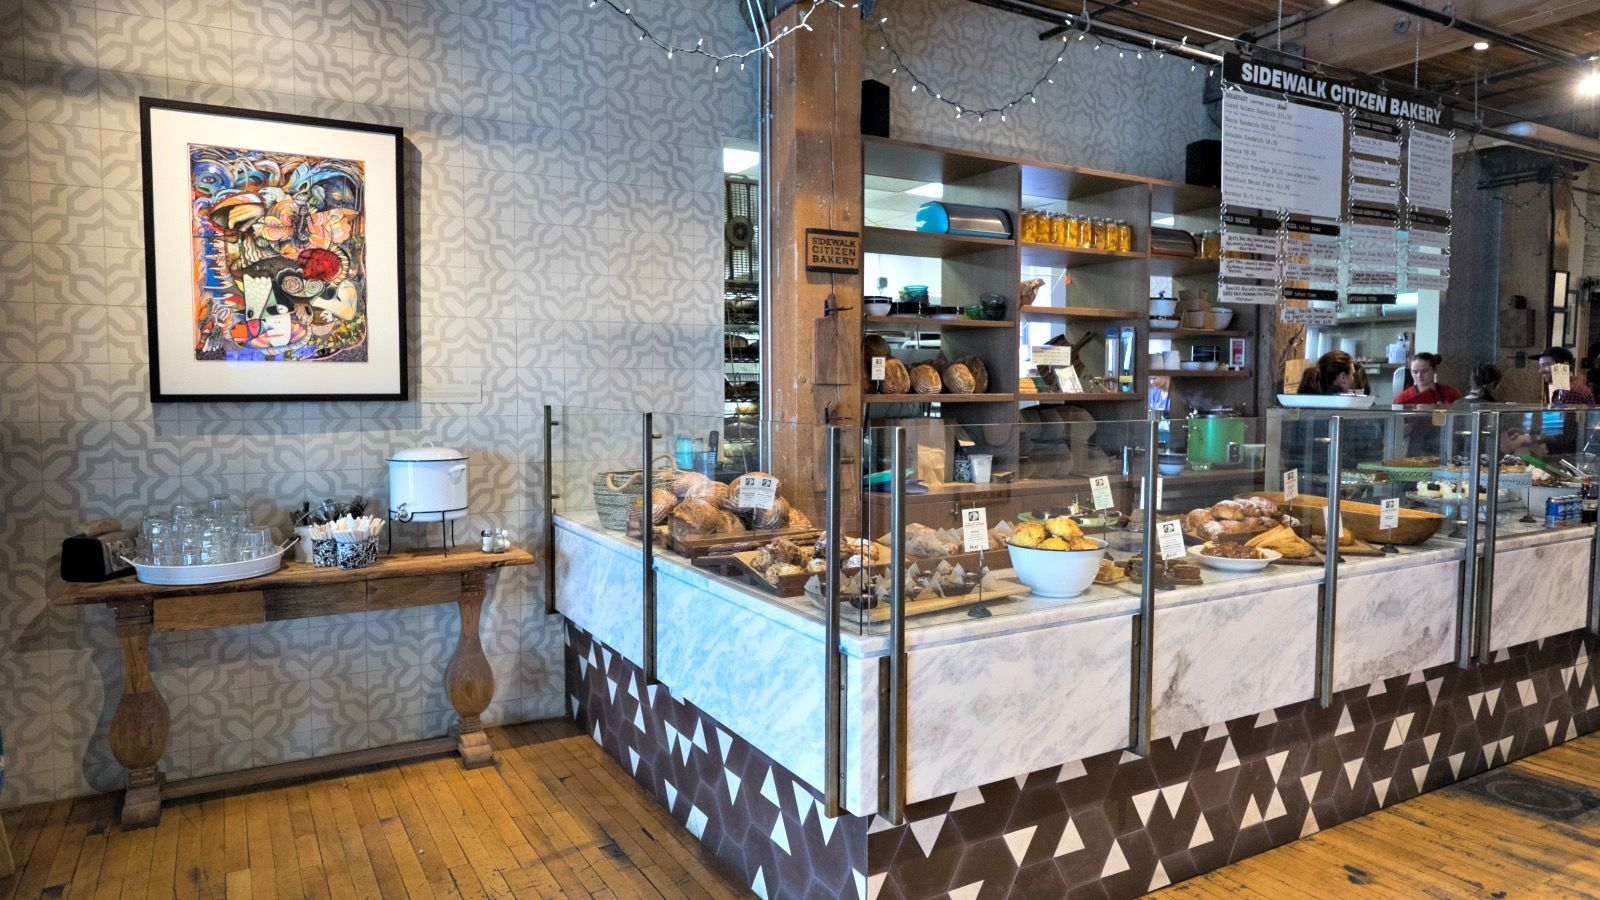 The bakery's decor gives off a rustic vibe.